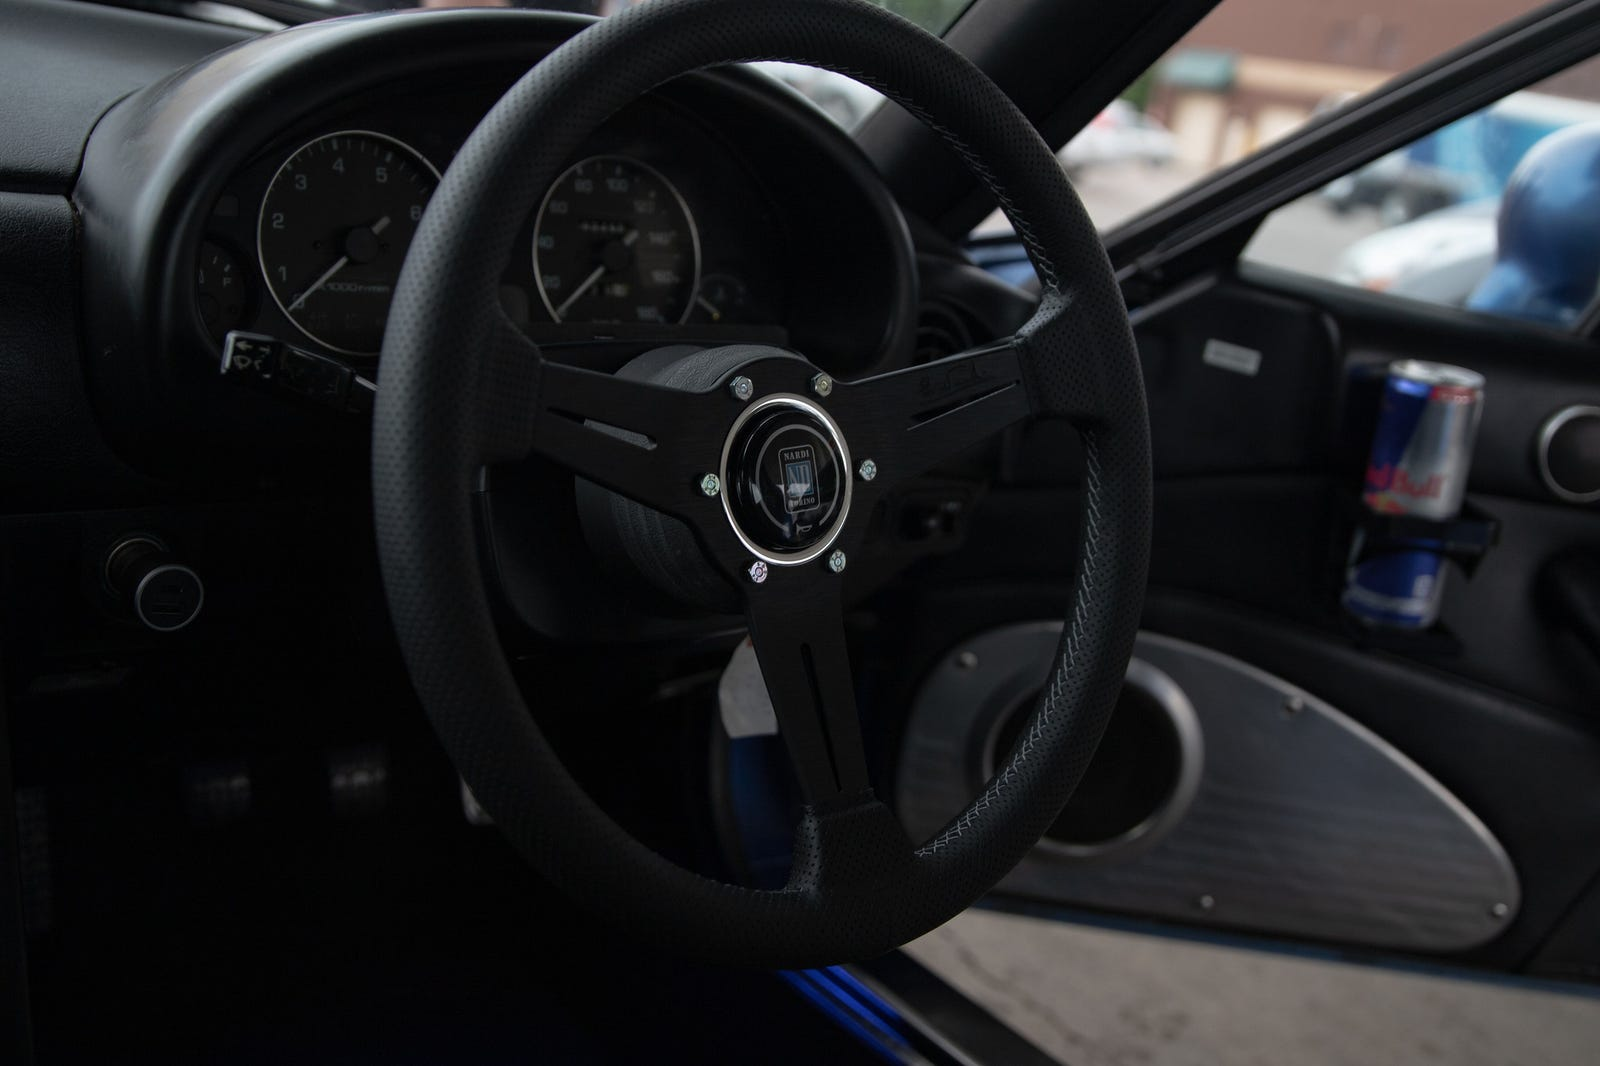 A Miata with functional cup holders?!